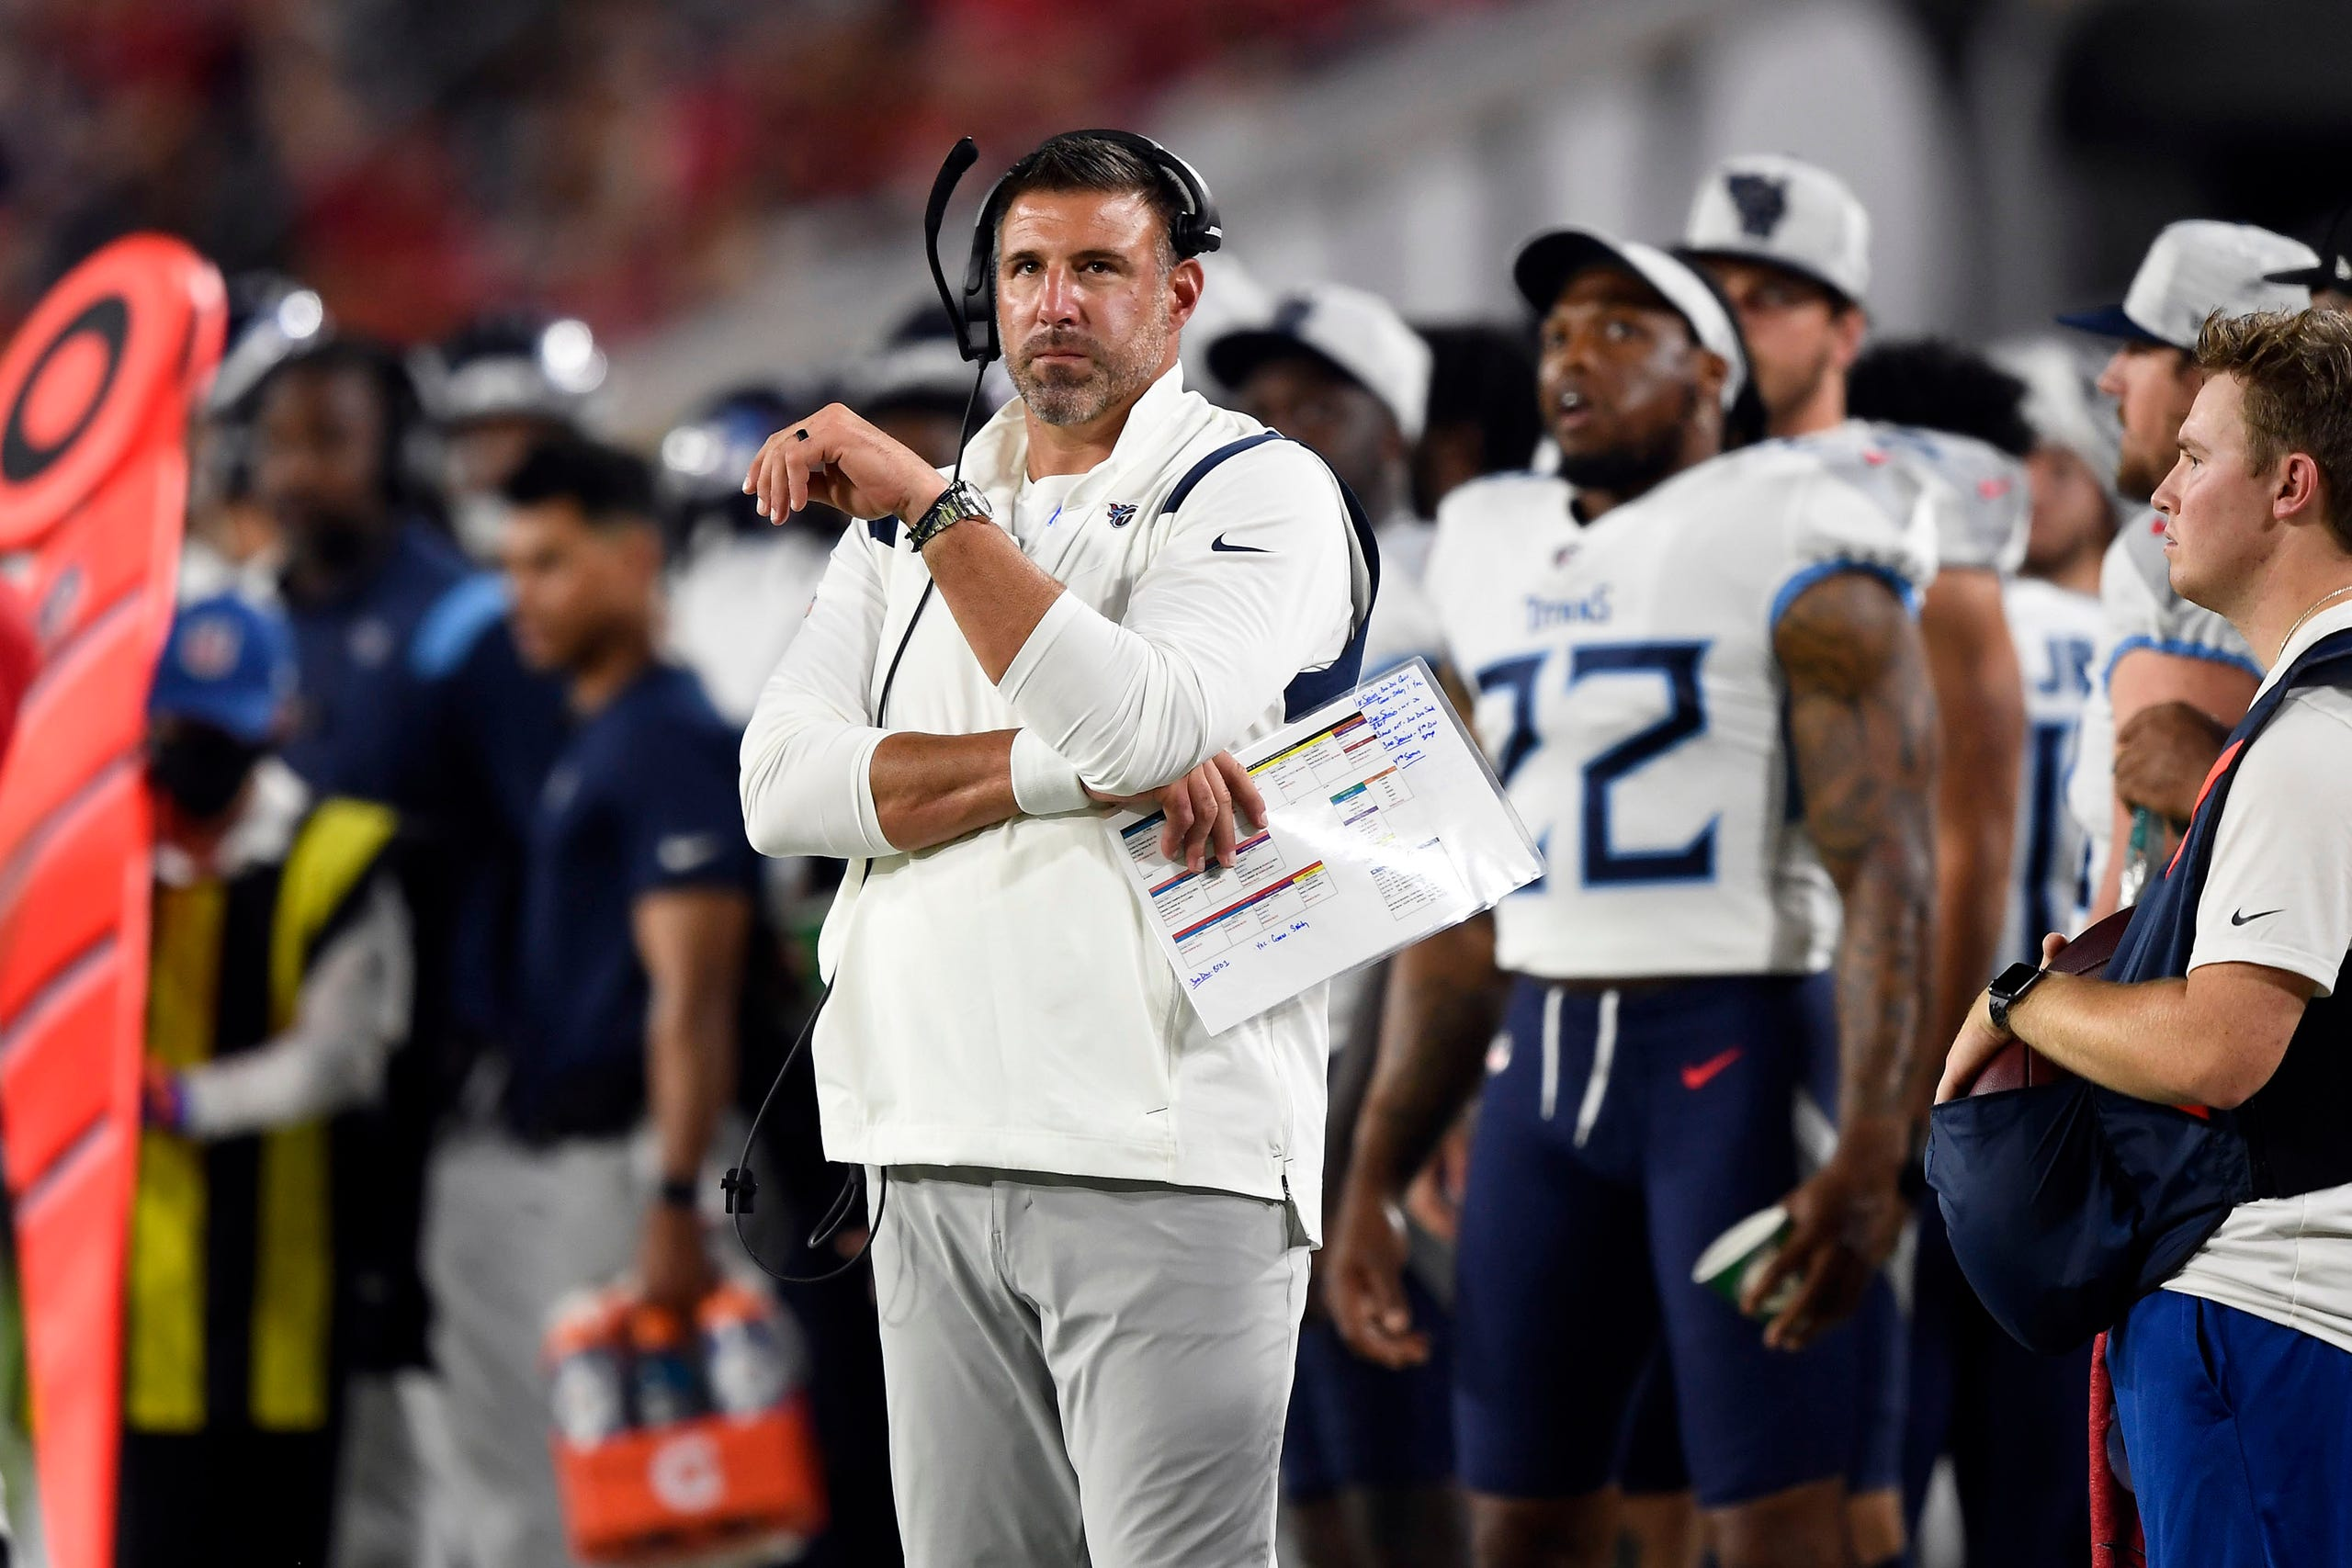 Tennessee Titans head coach Mike Vrabel watches over his team during the first quarter of an NFL preseason game against the Buccaneers at Raymond James Stadium Saturday, Aug. 21, 2021 in Tampa, Fla.